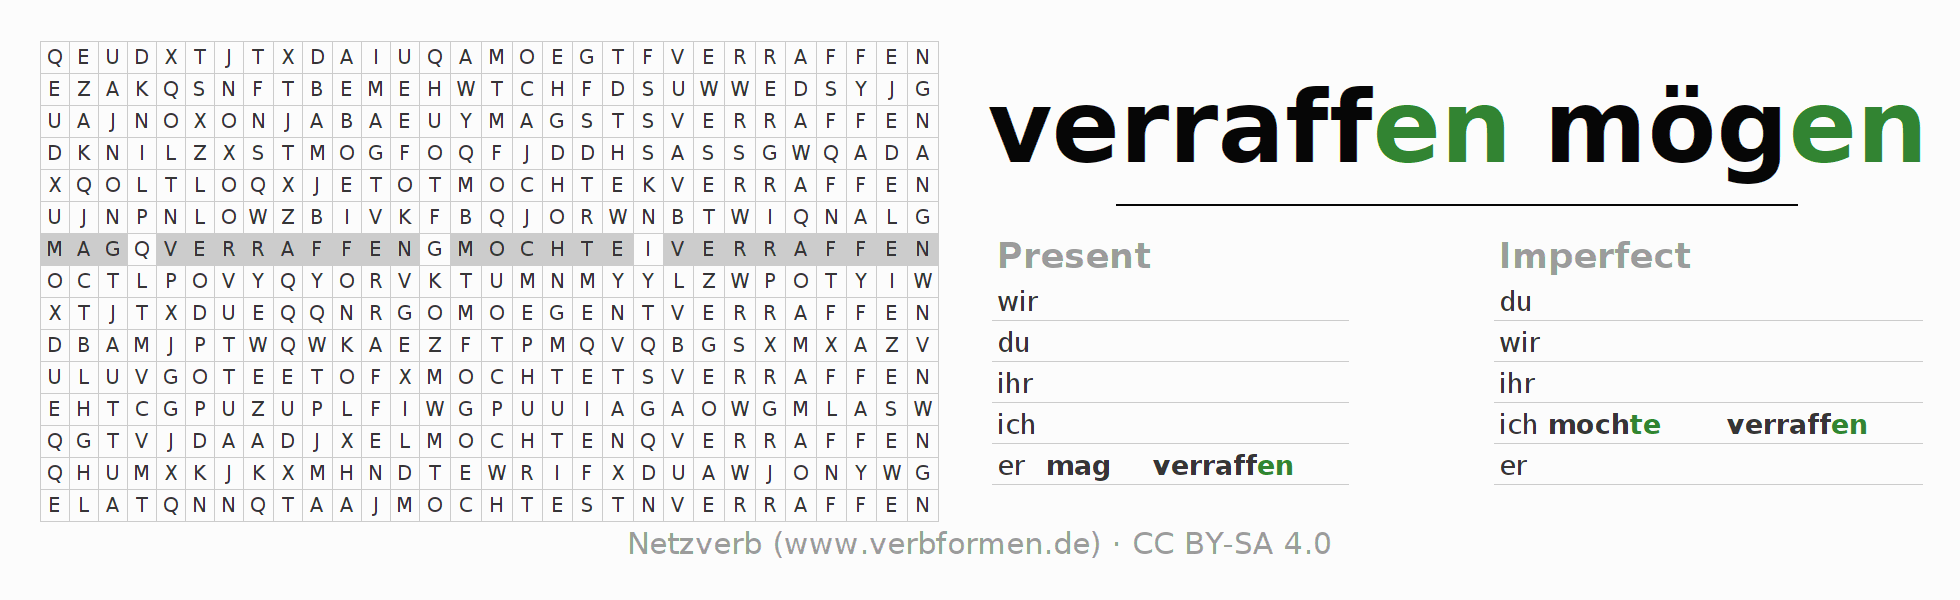 Word search puzzle for the conjugation of the verb mag verraffen